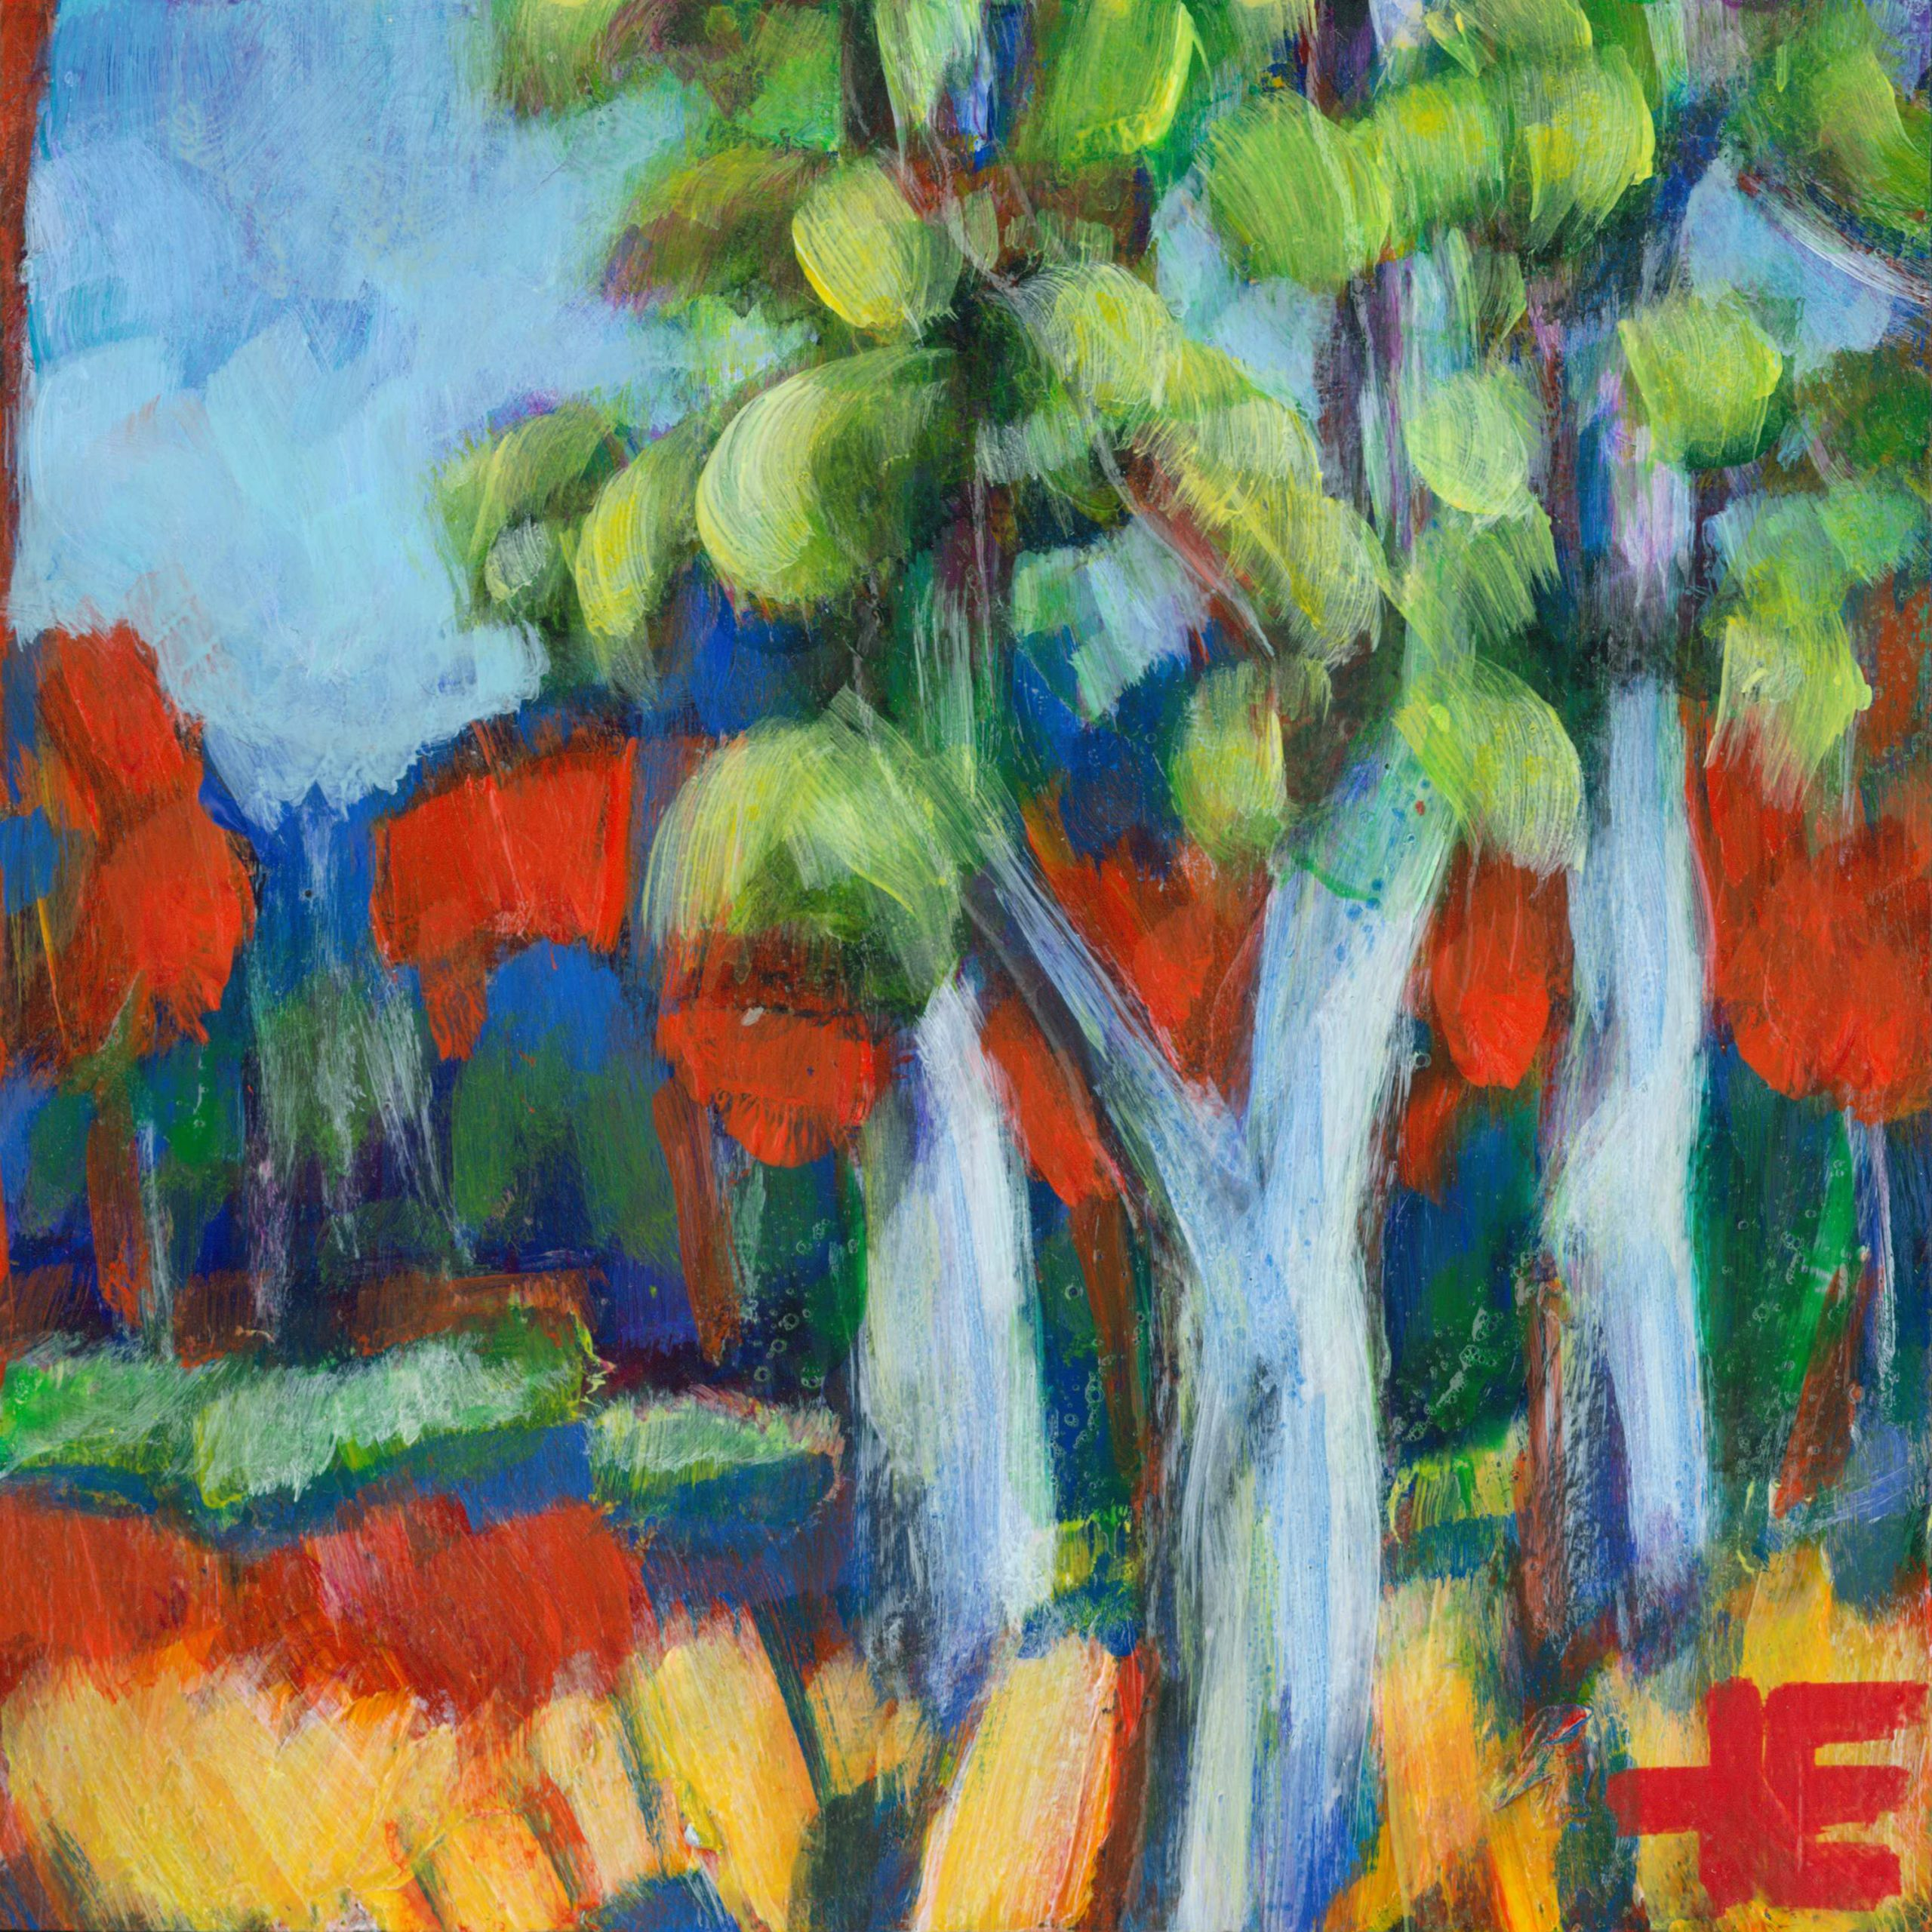 """A photo of the trees in Elkwater called """"End Of The Hike-Horseshoe Canyon"""" by Canadian artist Theresa Eisenbarth"""